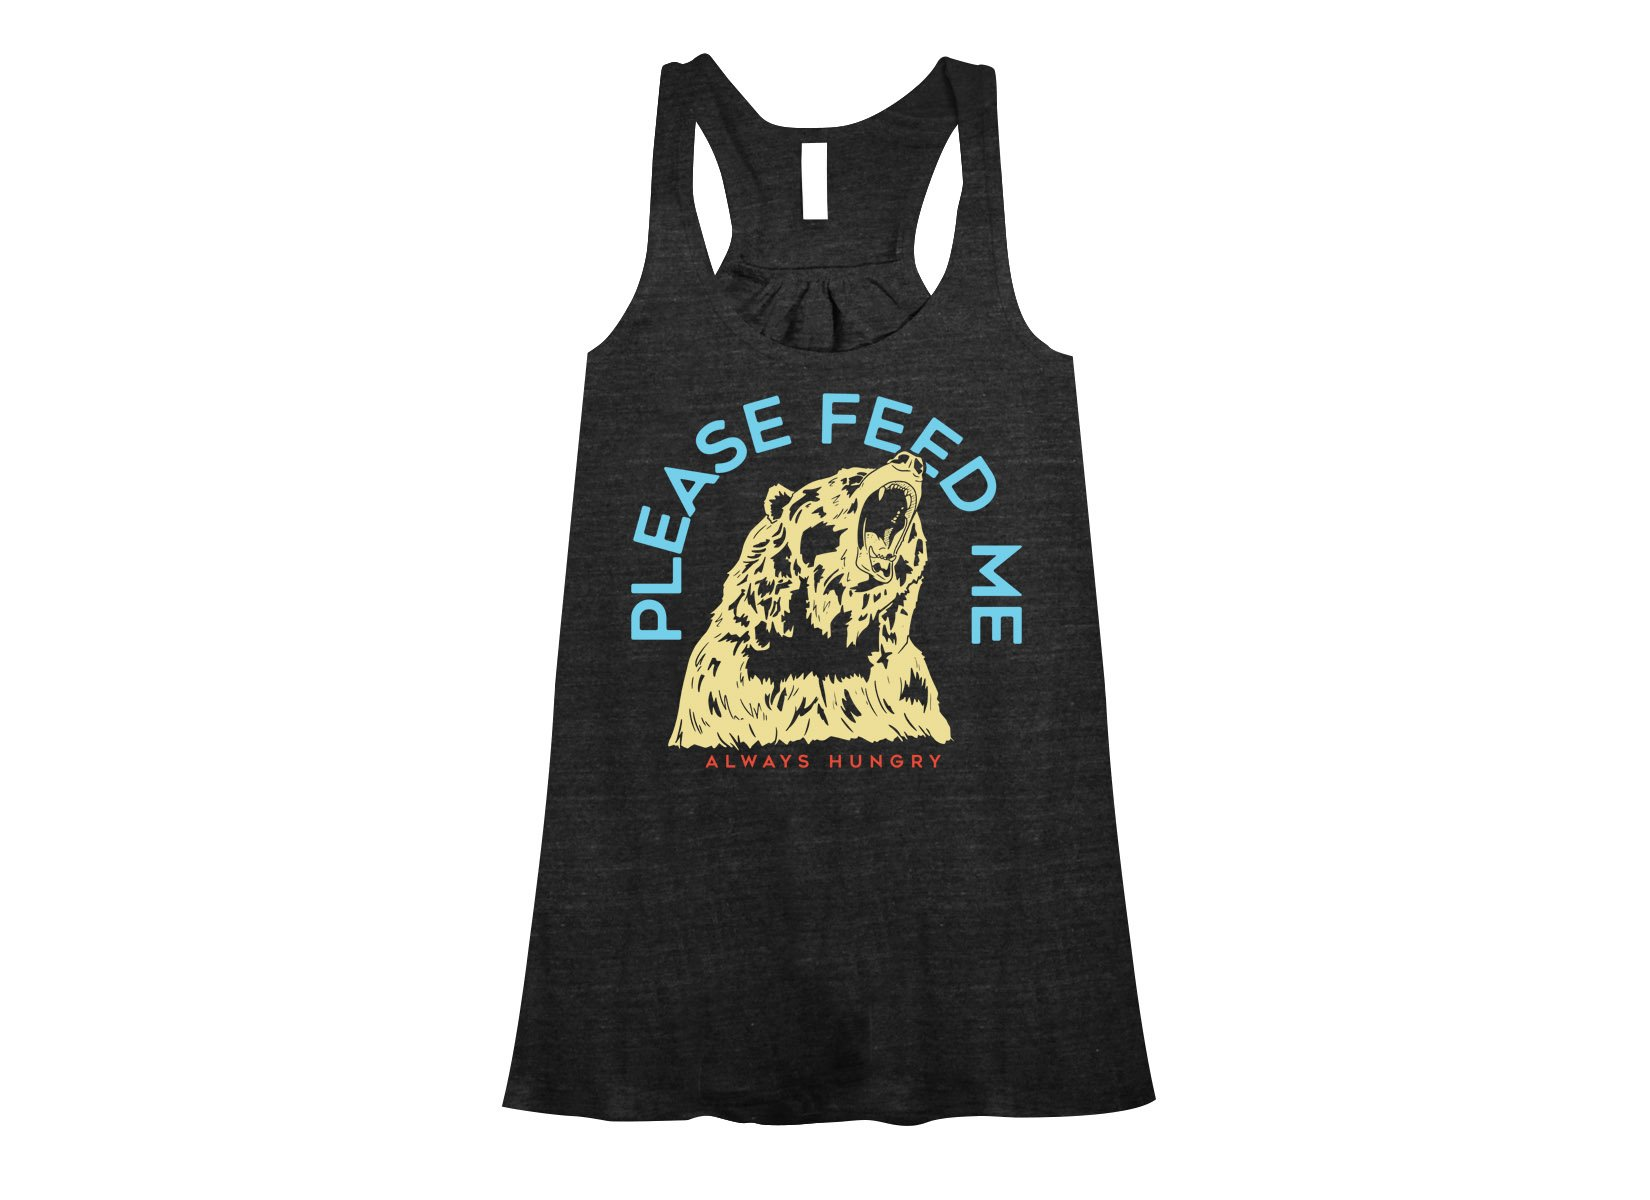 Please Feed Me, Always Hungry on Womens Tanks T-Shirt